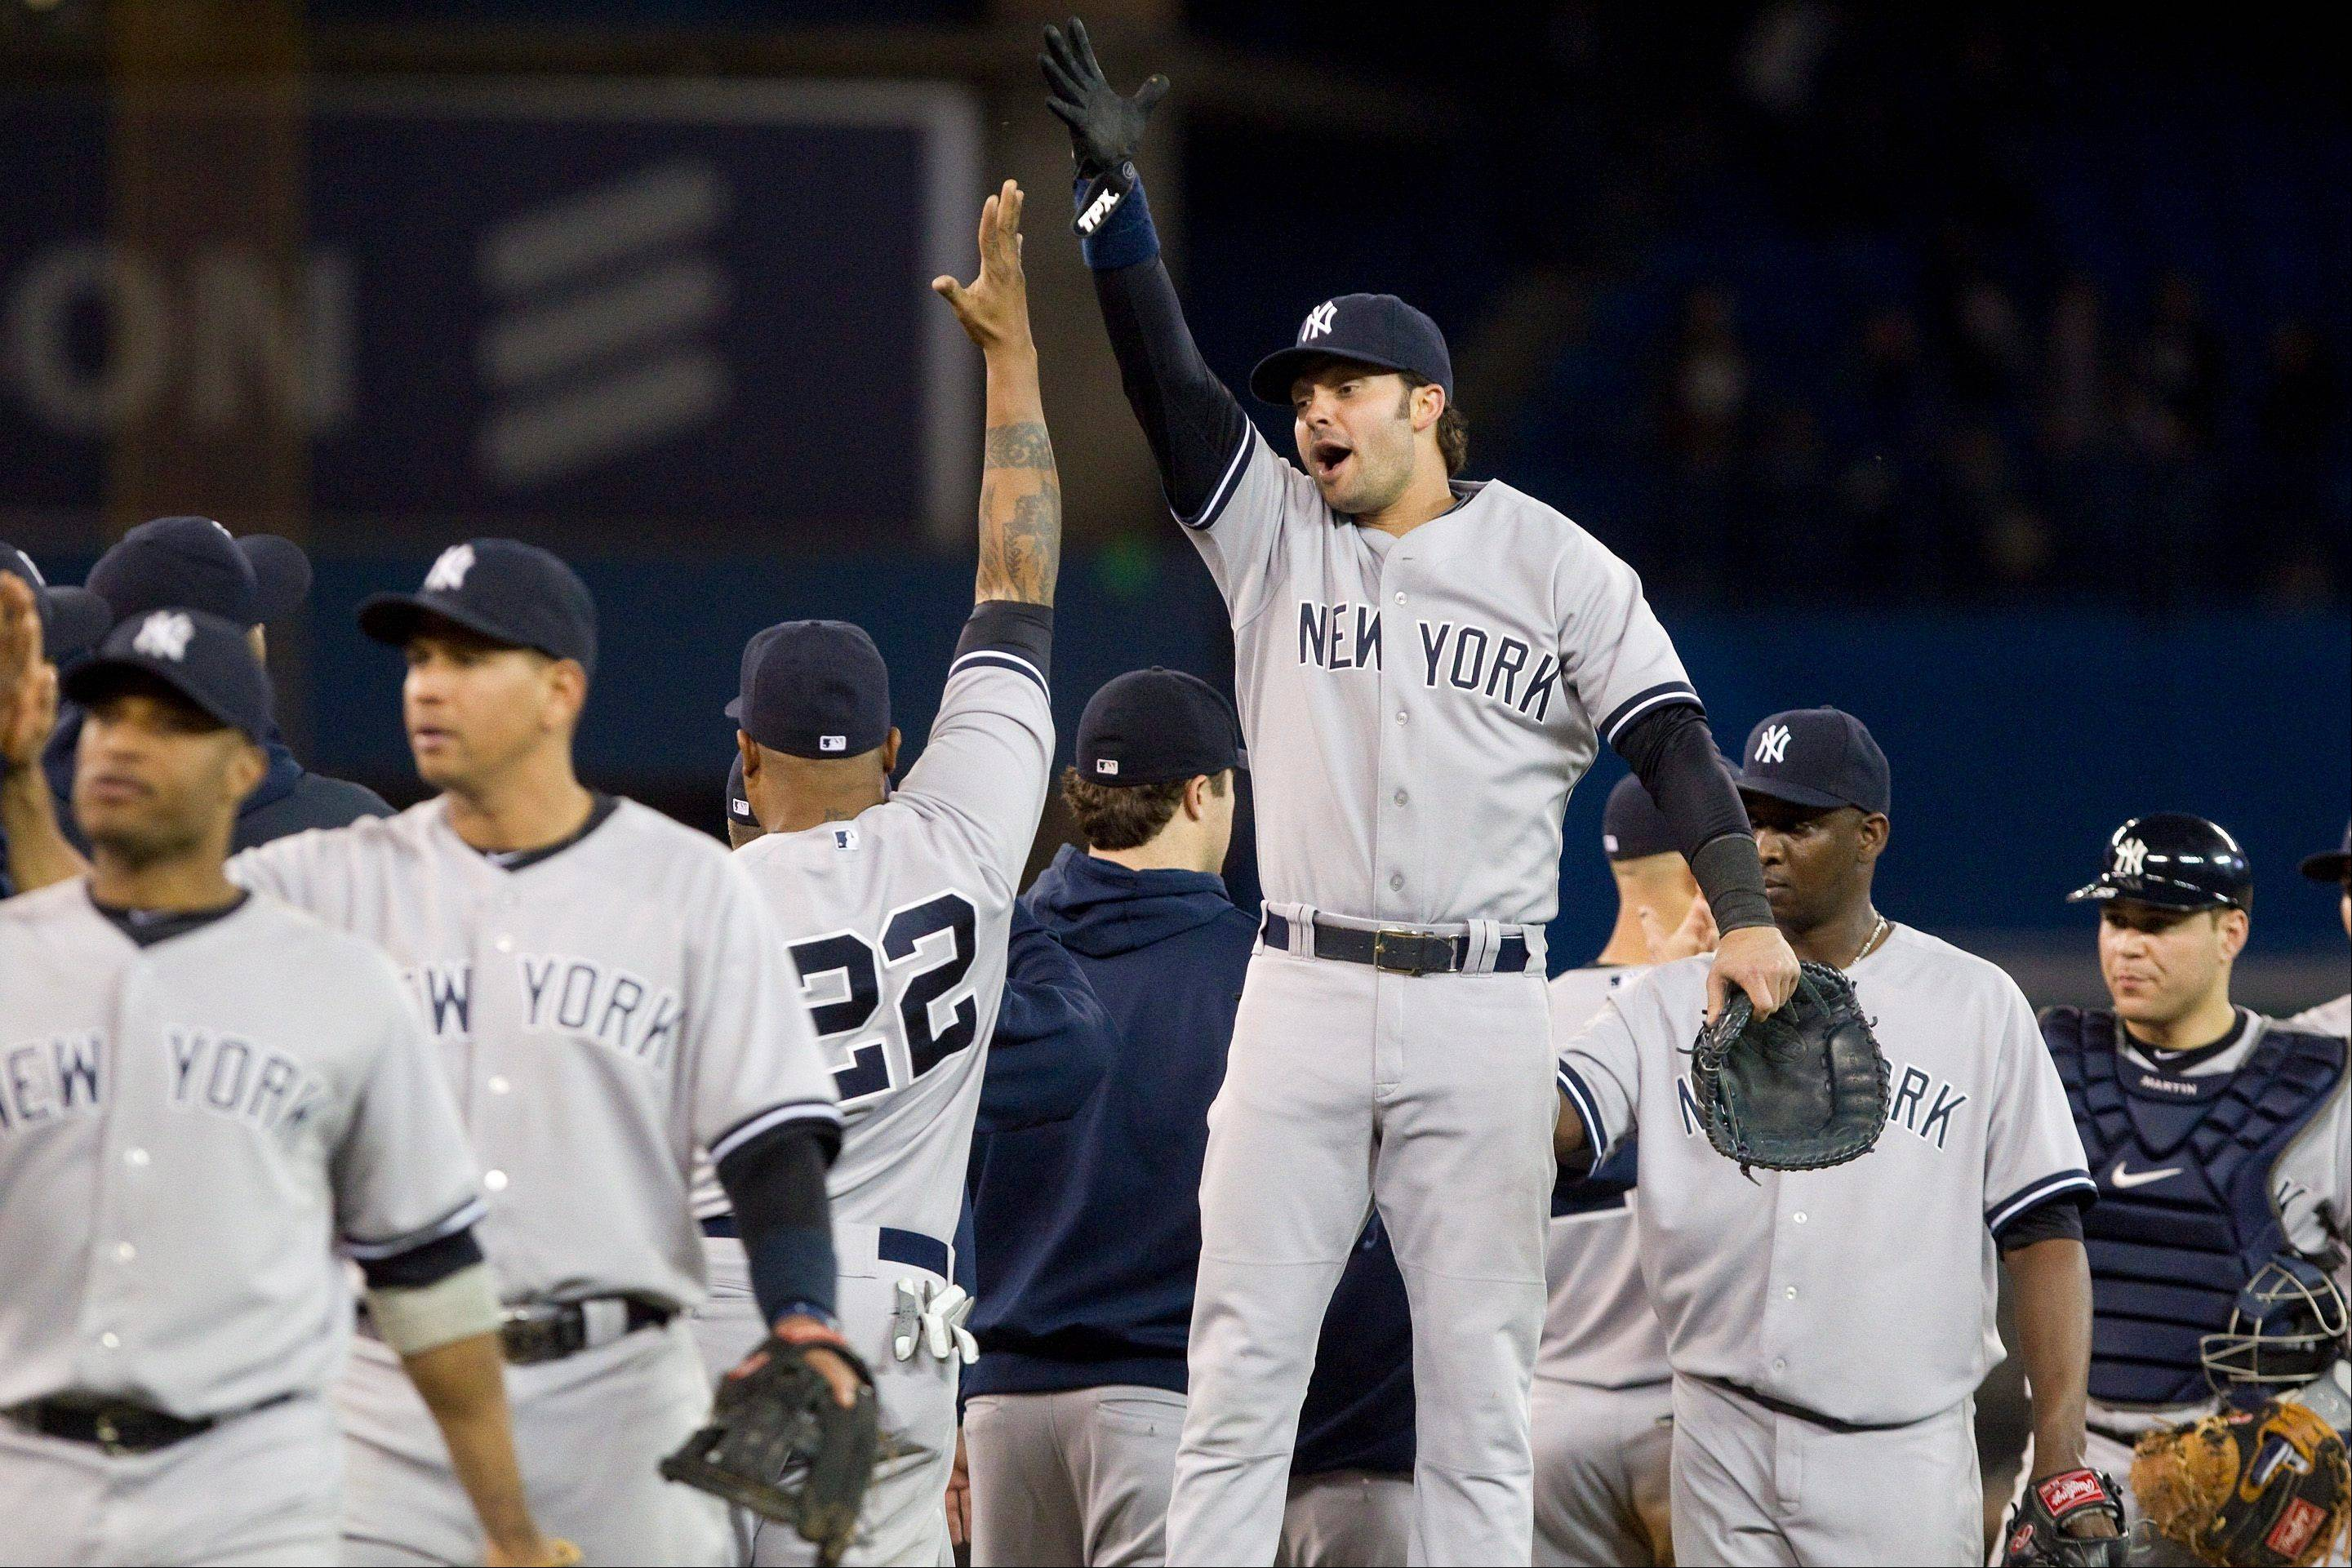 Nick Swisher high-fives Andruw Jones (22) as they celebrate the Yankees� 11-4 win over the Blue Jays Friday in Toronto.